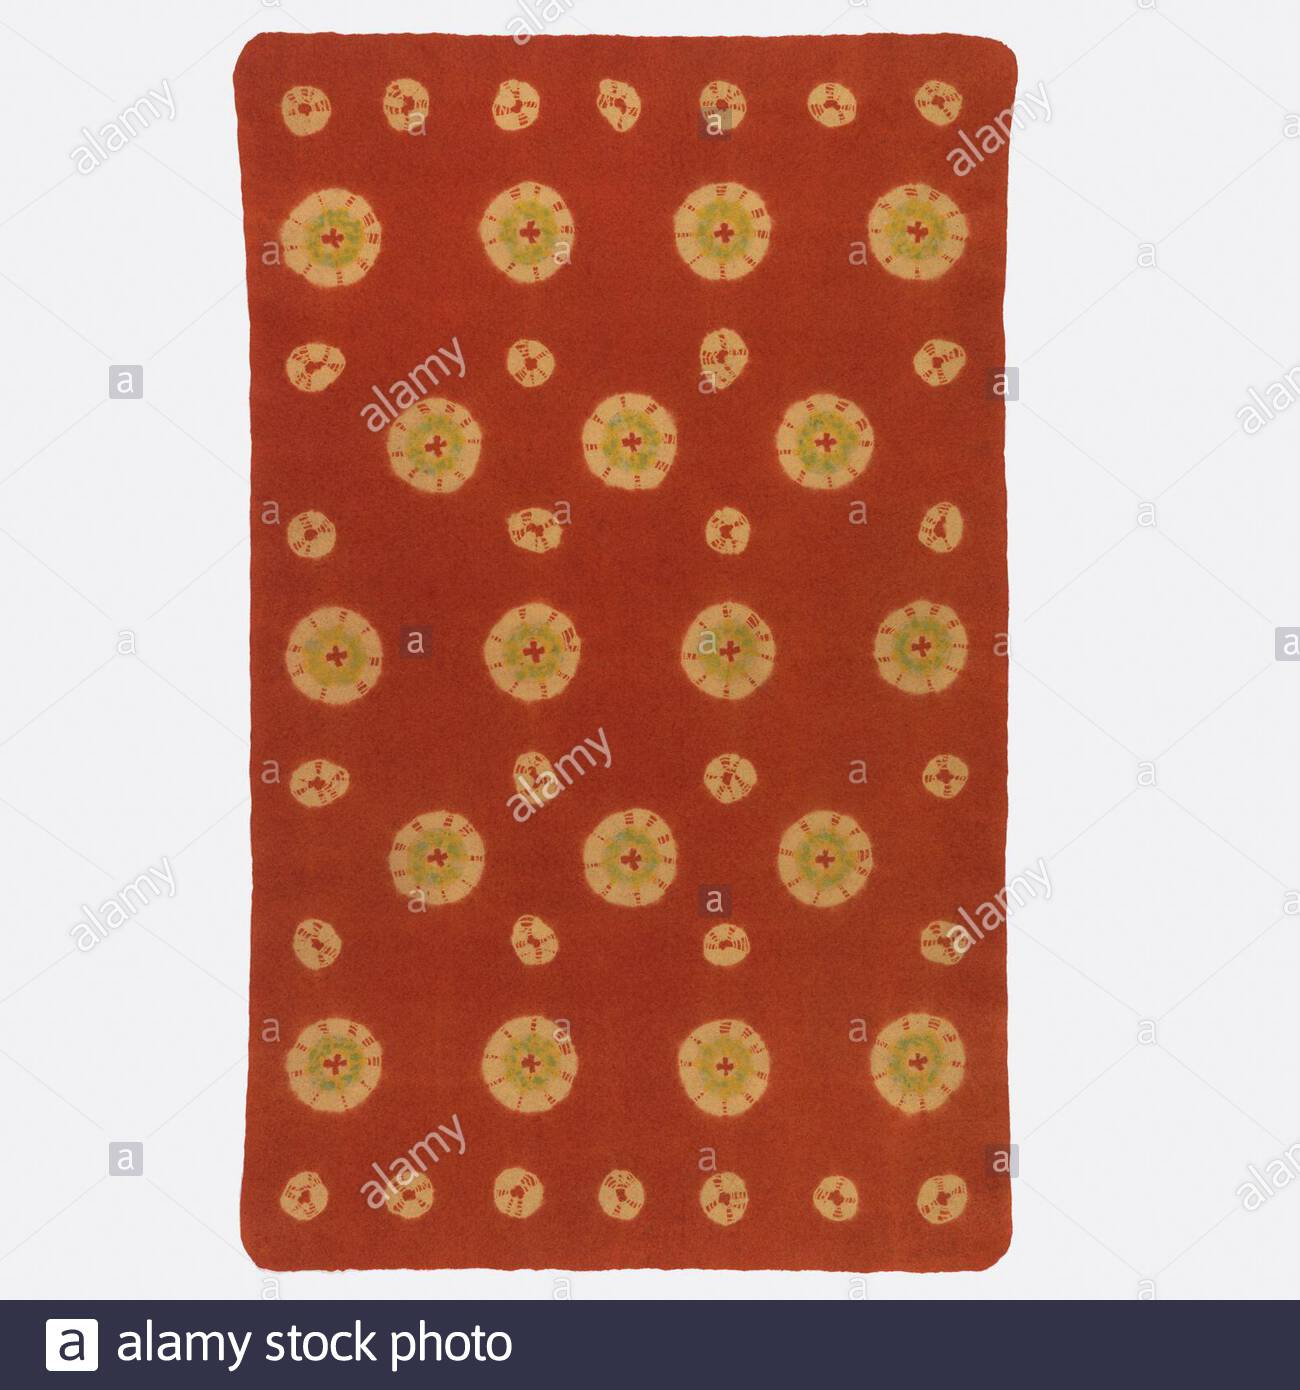 tapis rectangulaire rouge